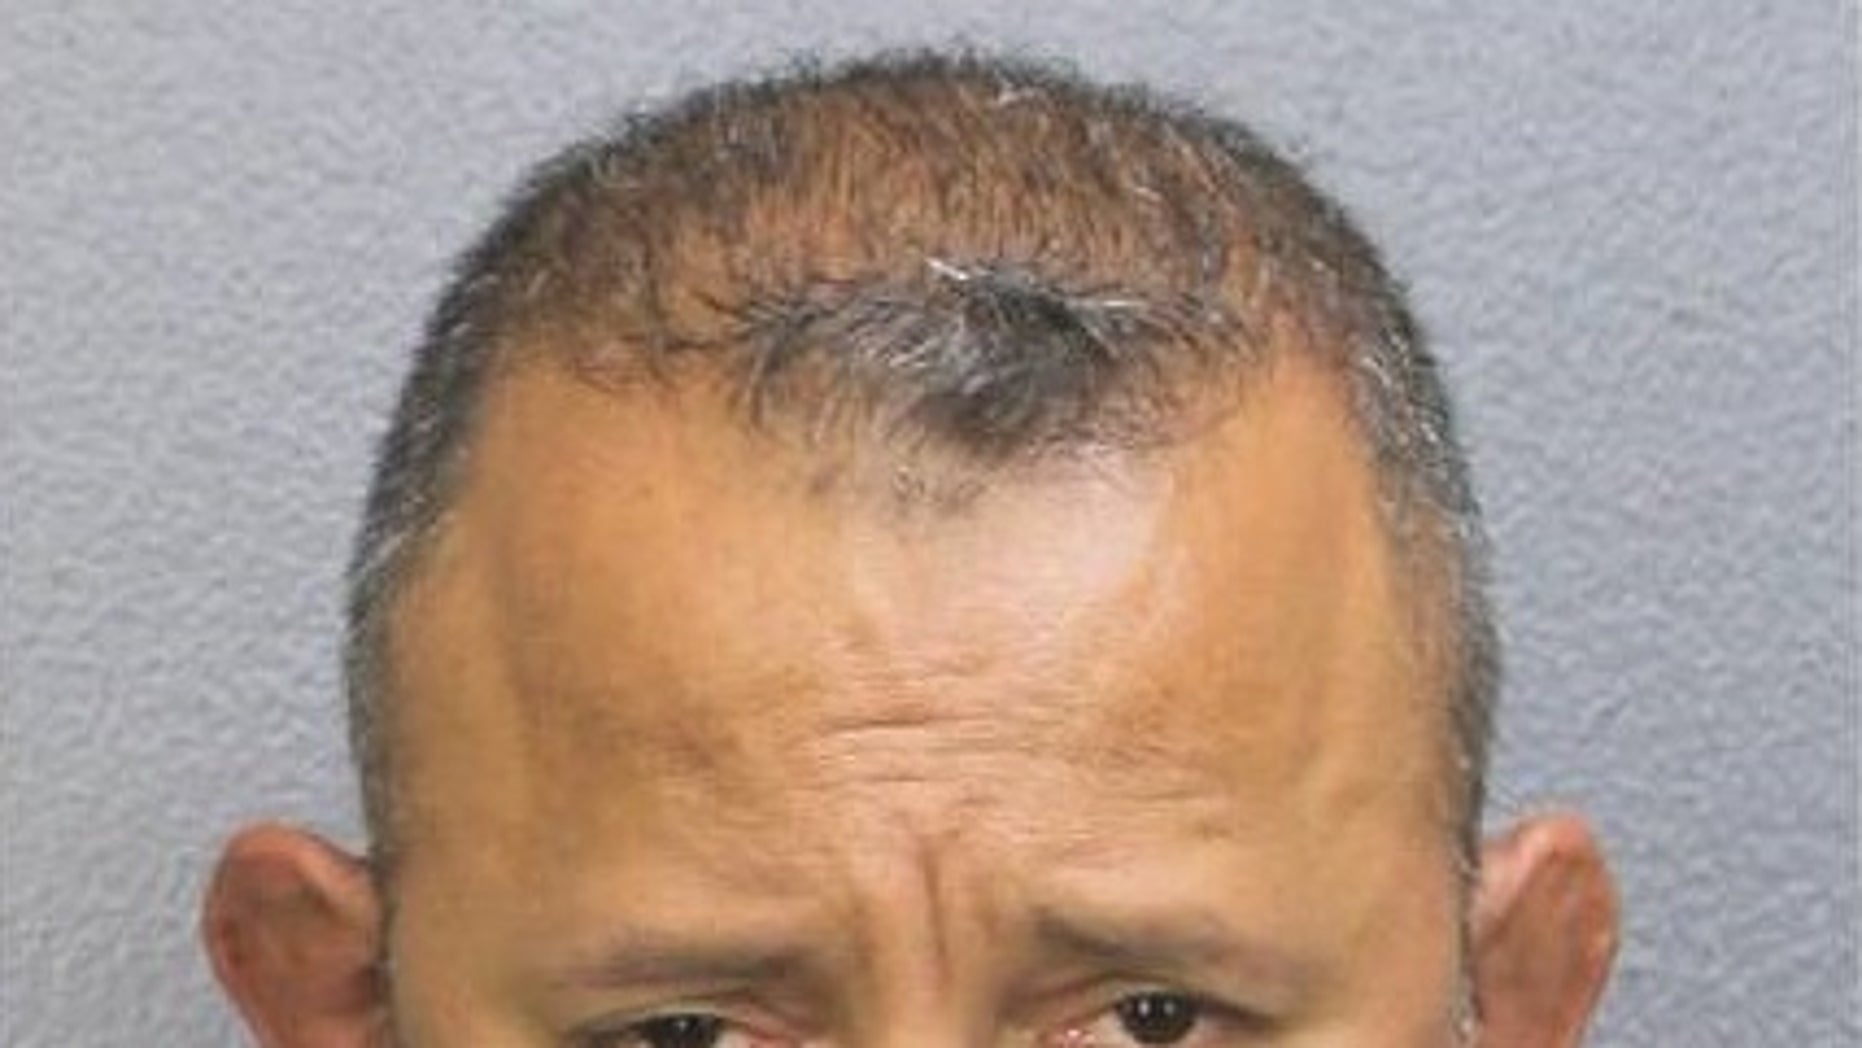 Deputy Henry Guzman was arrested after he allegedly stole some $200 from a Florida Walmart.